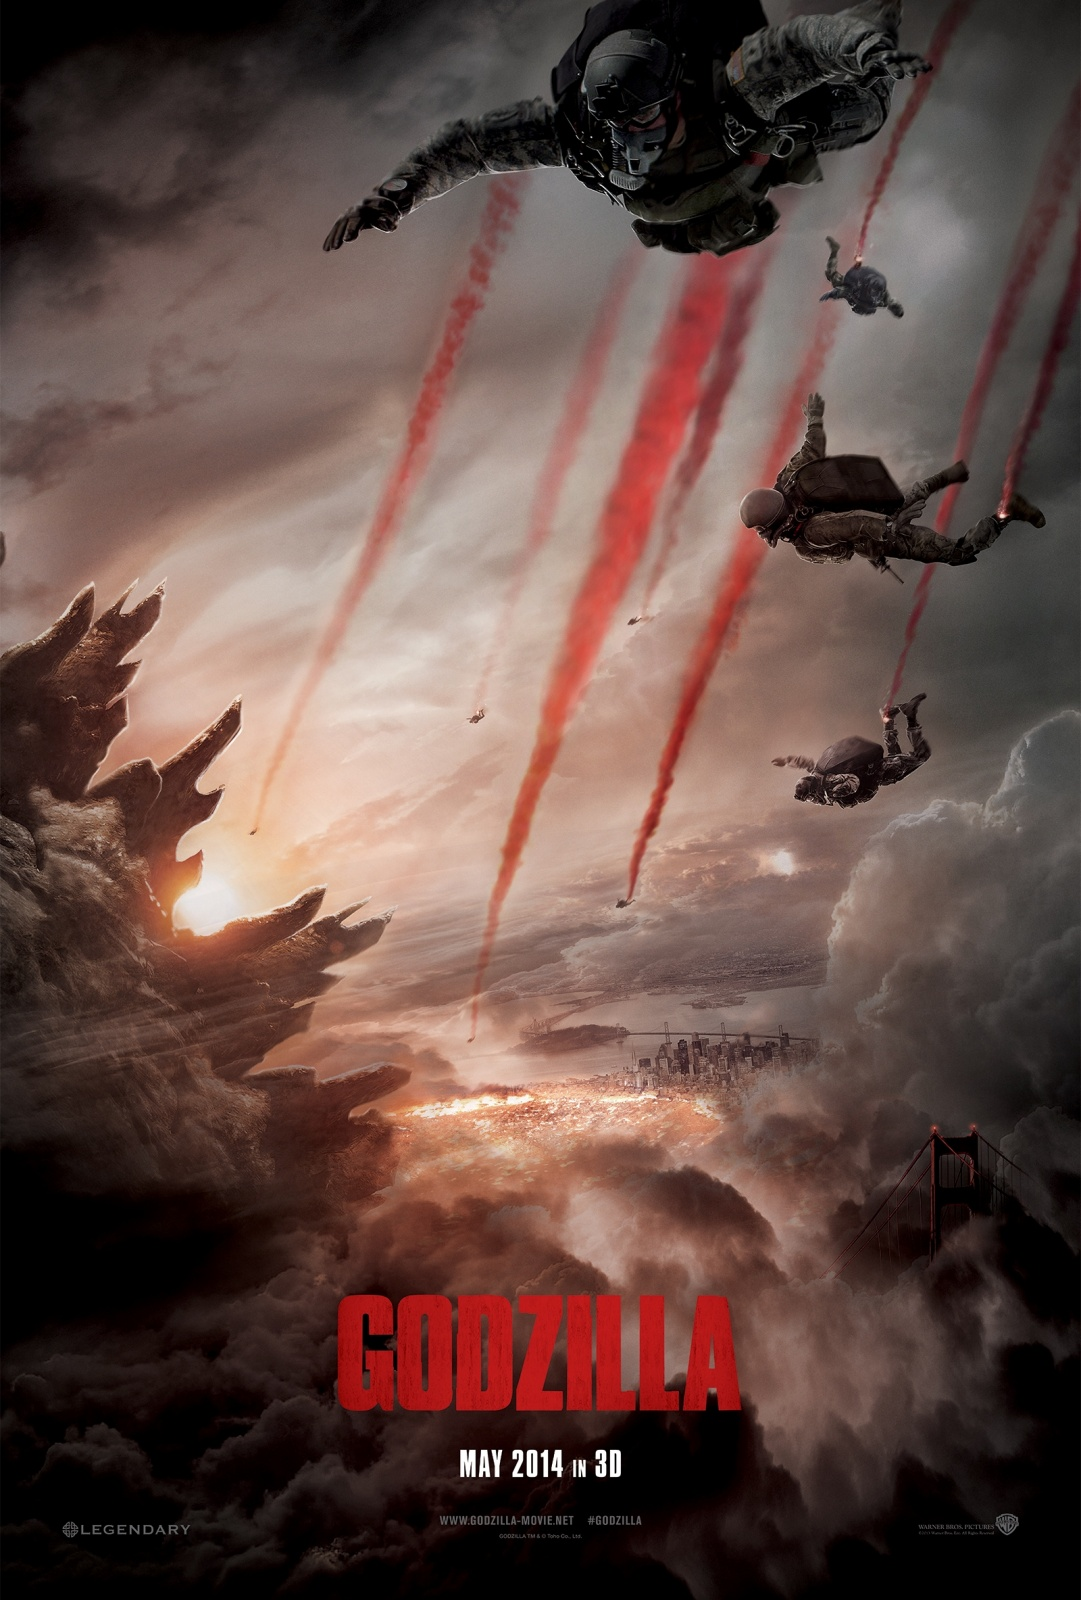 Godzilla 2014 Watch Full Movie Online For Free In Full HD 1080p